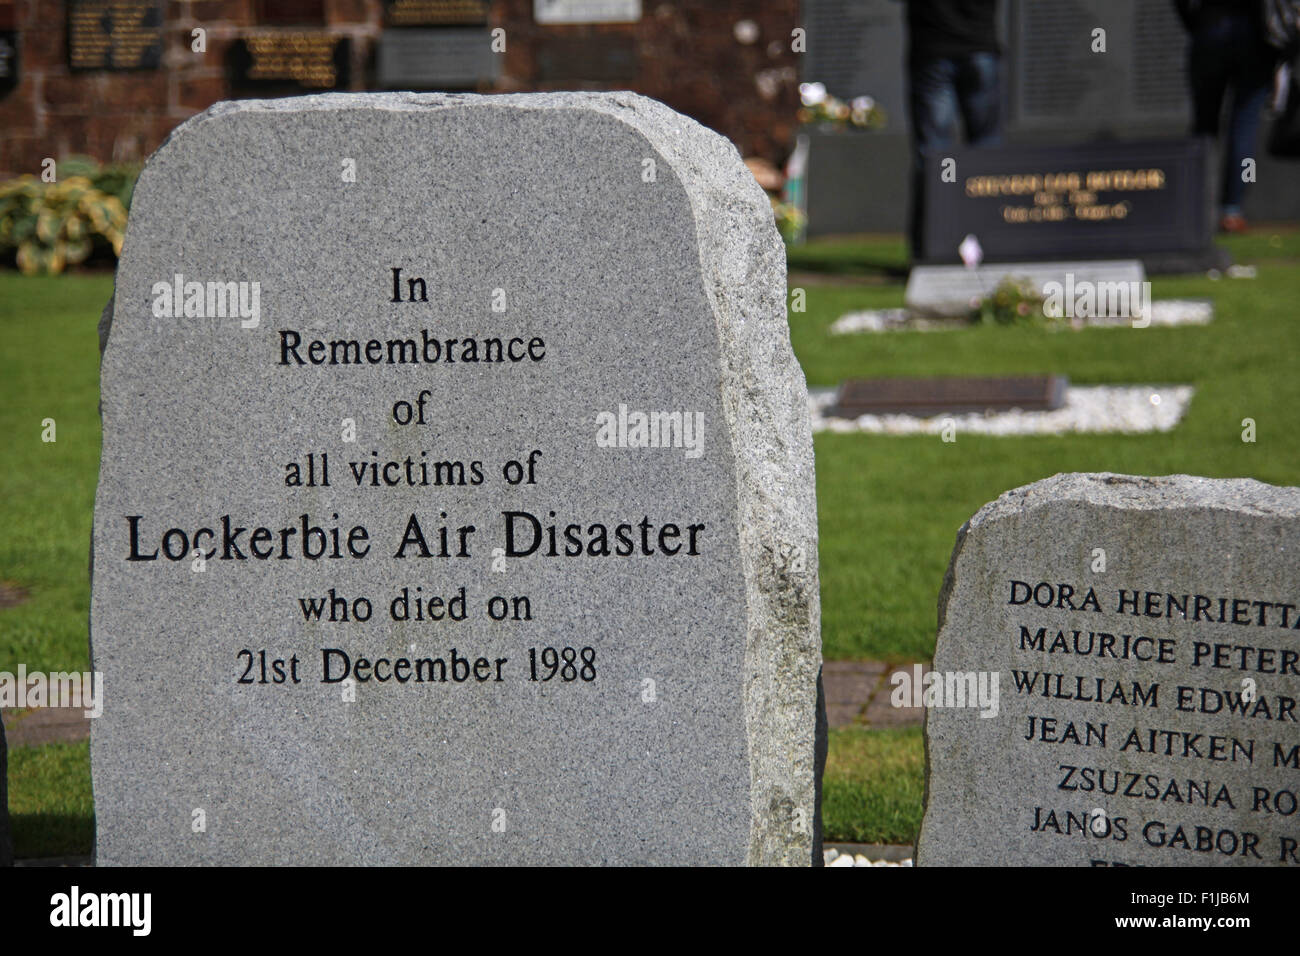 Scotland,UK,Lodge,Visitors,Centre,DLVC,Trust,Lockerbie,Memorial,Scotland,Victims,Pan,Am,PanAm,flight,103,bomb,bombing,terrorist,December,1988,attack,crash,dead,site,21/12/1988,270,victims,Scottish,Town,conspiracy,blast,Tundergarth,Room,garden,of,Dryfesdale,Cemetery,news,Cultural,New York,GoTonySmith,Lodge,Visitors,Centre,DLVC,Trust,Lockerbie,Memorial,Scotland,Victims,Pan,Am,PanAm,flight,103,bomb,bombing,terrorist,December,1988,attack,crash,dead,site,21/12/1988,270,victims,Scottish,Town,conspiracy,blast,Tundergarth,Room,garden,of,Dryfesdale,Cemetery,news,Cultural,understanding,remembering,innocent,transatlantic,Frankfurt,Detroit,Libyan,Libya,Colonel Muammar Gaddafi,civil,case,compensation,terrorism,PA103,30,30years,years,Syracuse,University,SU,family,collections,Story,Archive,Archives,40,35,Timeline,saga,disaster,air,Scholars,program,programs,remembrance,Clipper Maid of the Seas,N739PA,Boeing,727,plane,aircraft,Scotland,UK,United Kingdom,GB,Great Britain,resting,place,Buy Pictures of,Buy Images Of,New York,al megrahi,30 Years